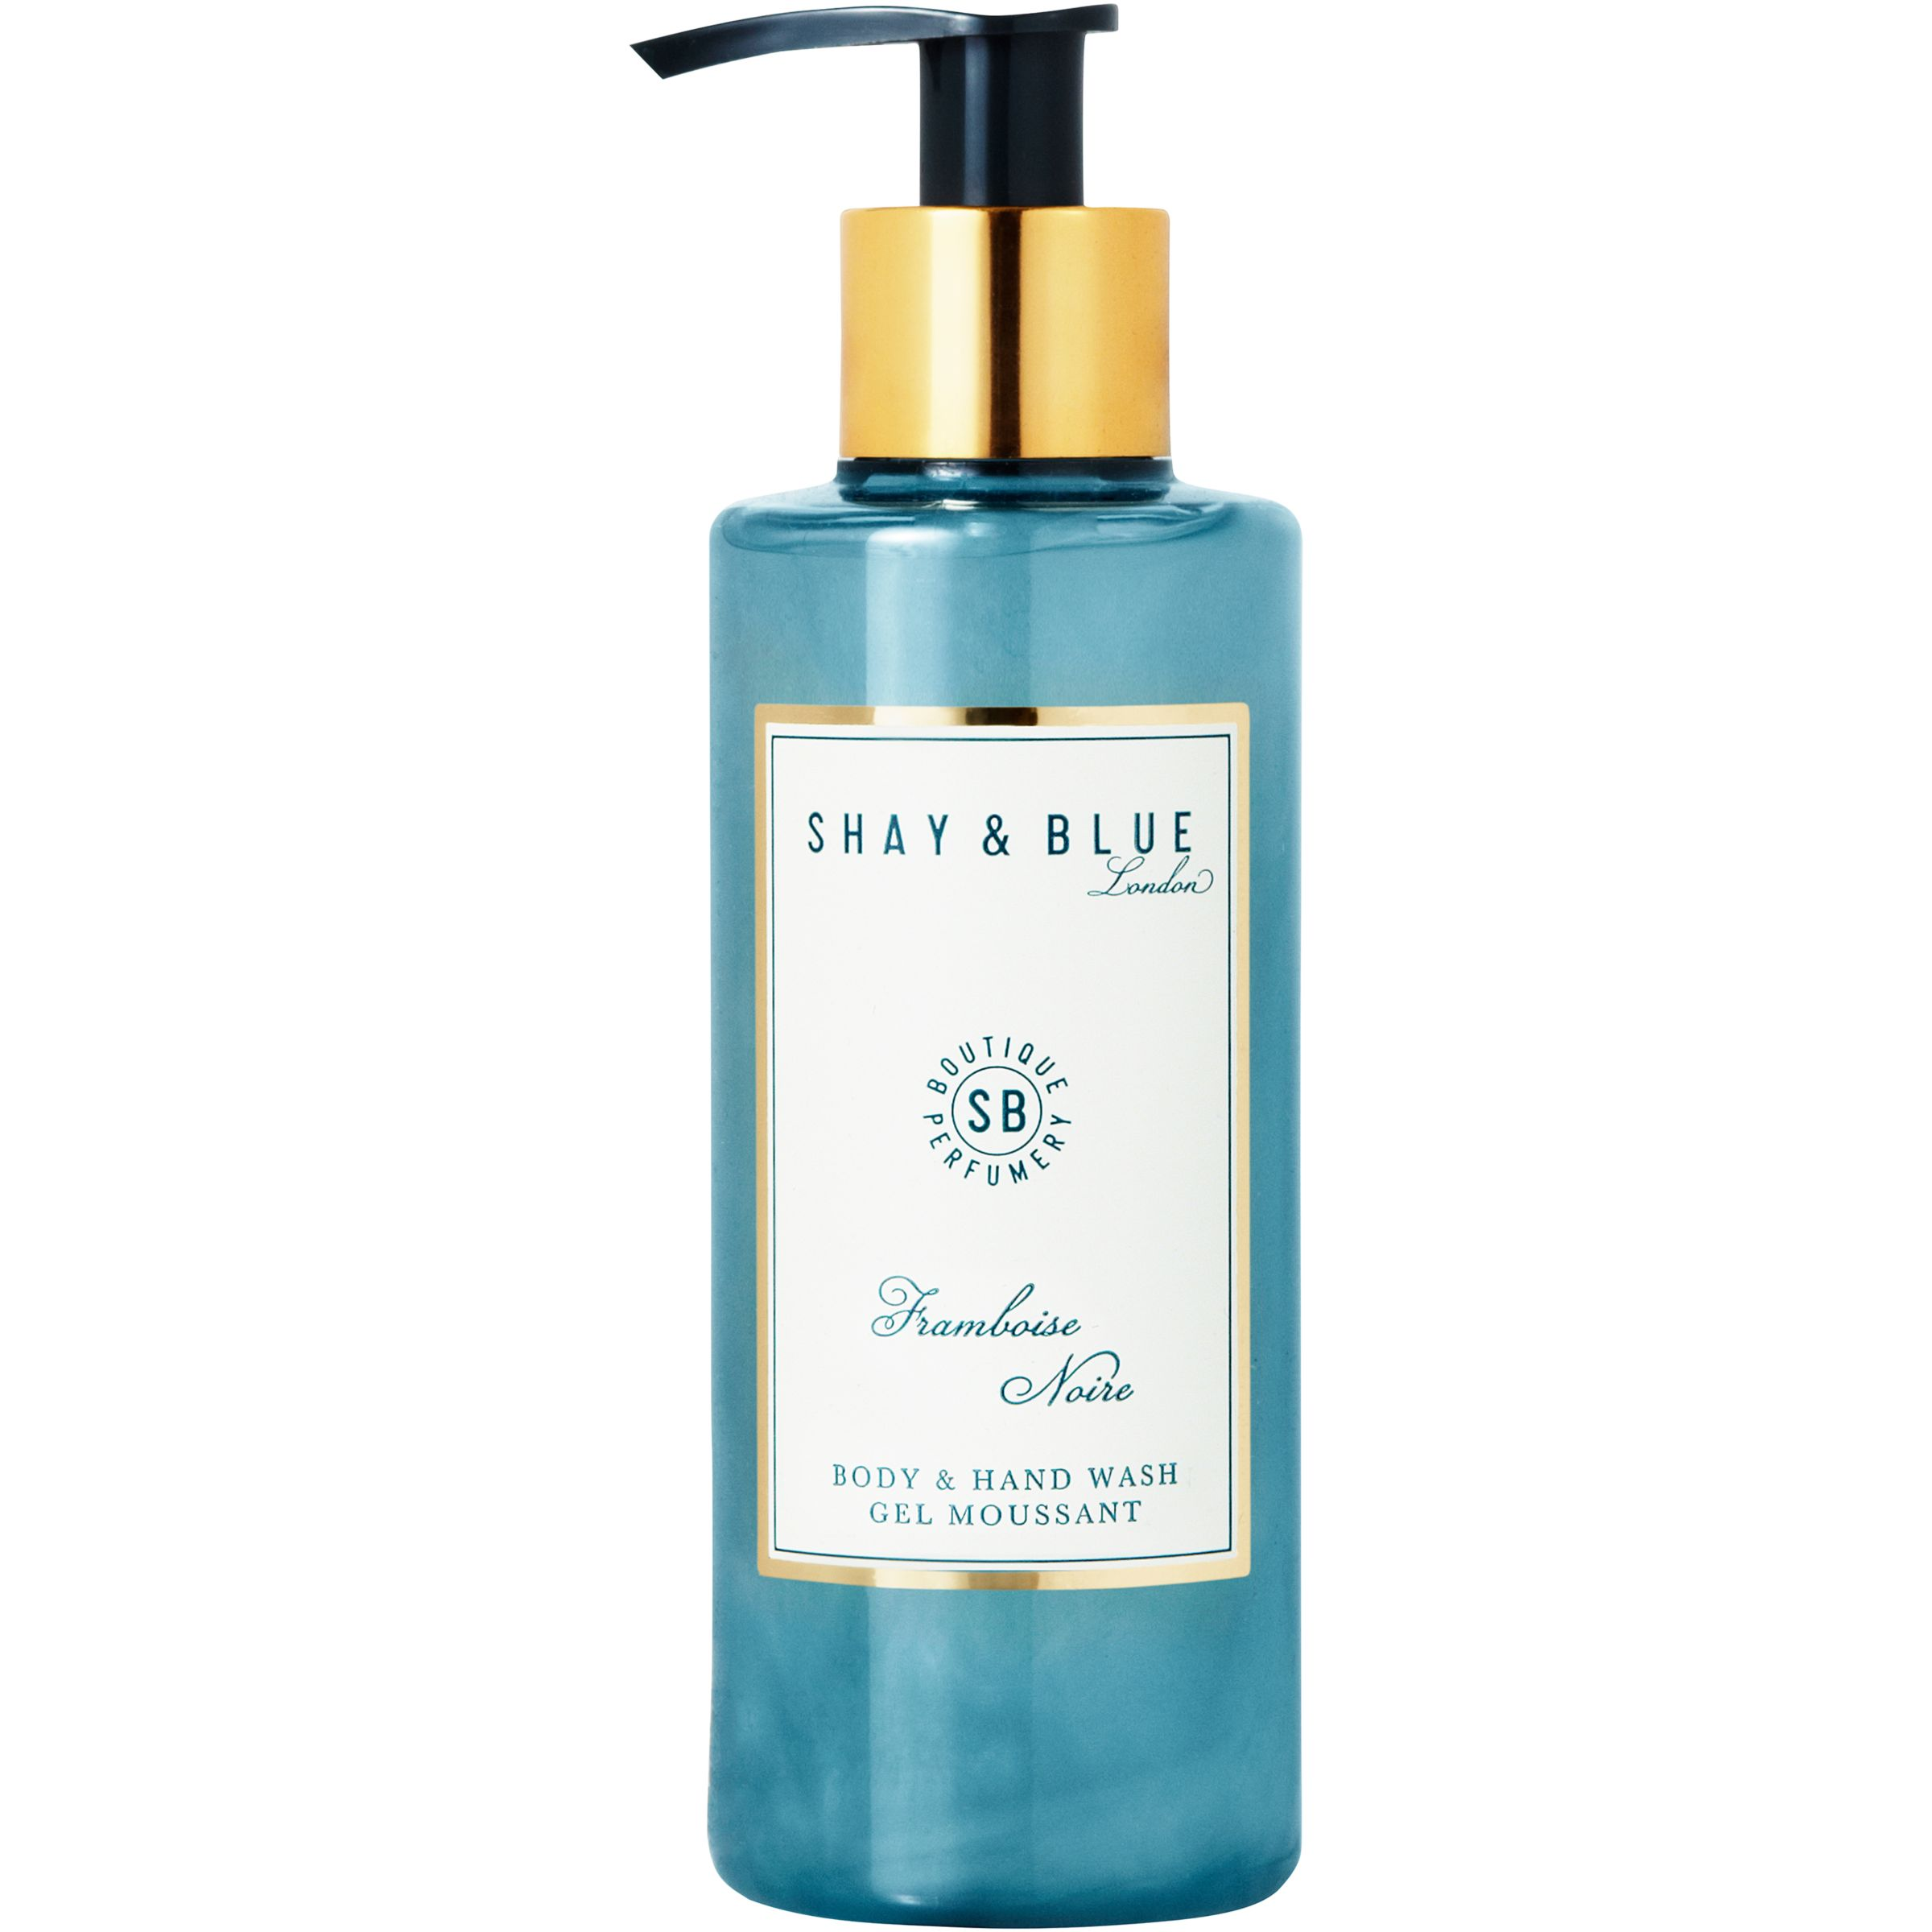 Shay & Blue Shay & Blue Framboise Noire Body & Hand Wash, 200ml